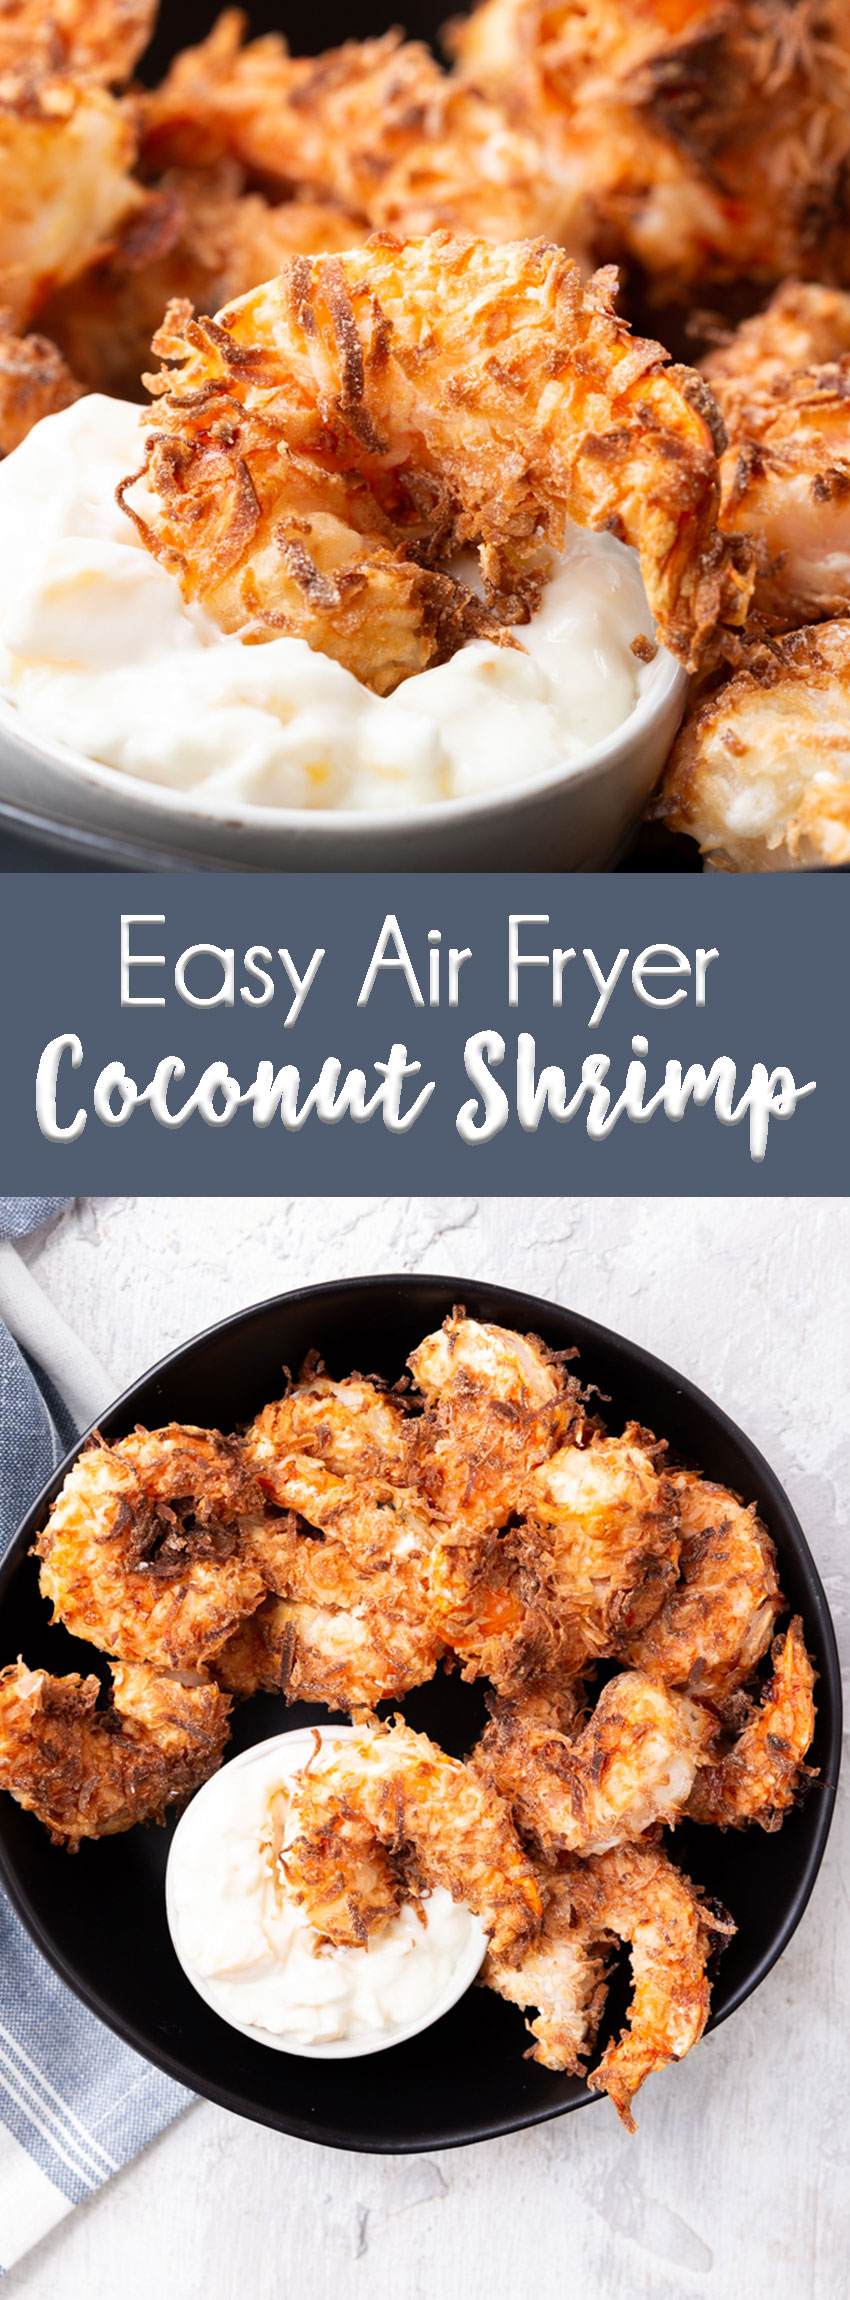 easy air fryer coconut shrimp